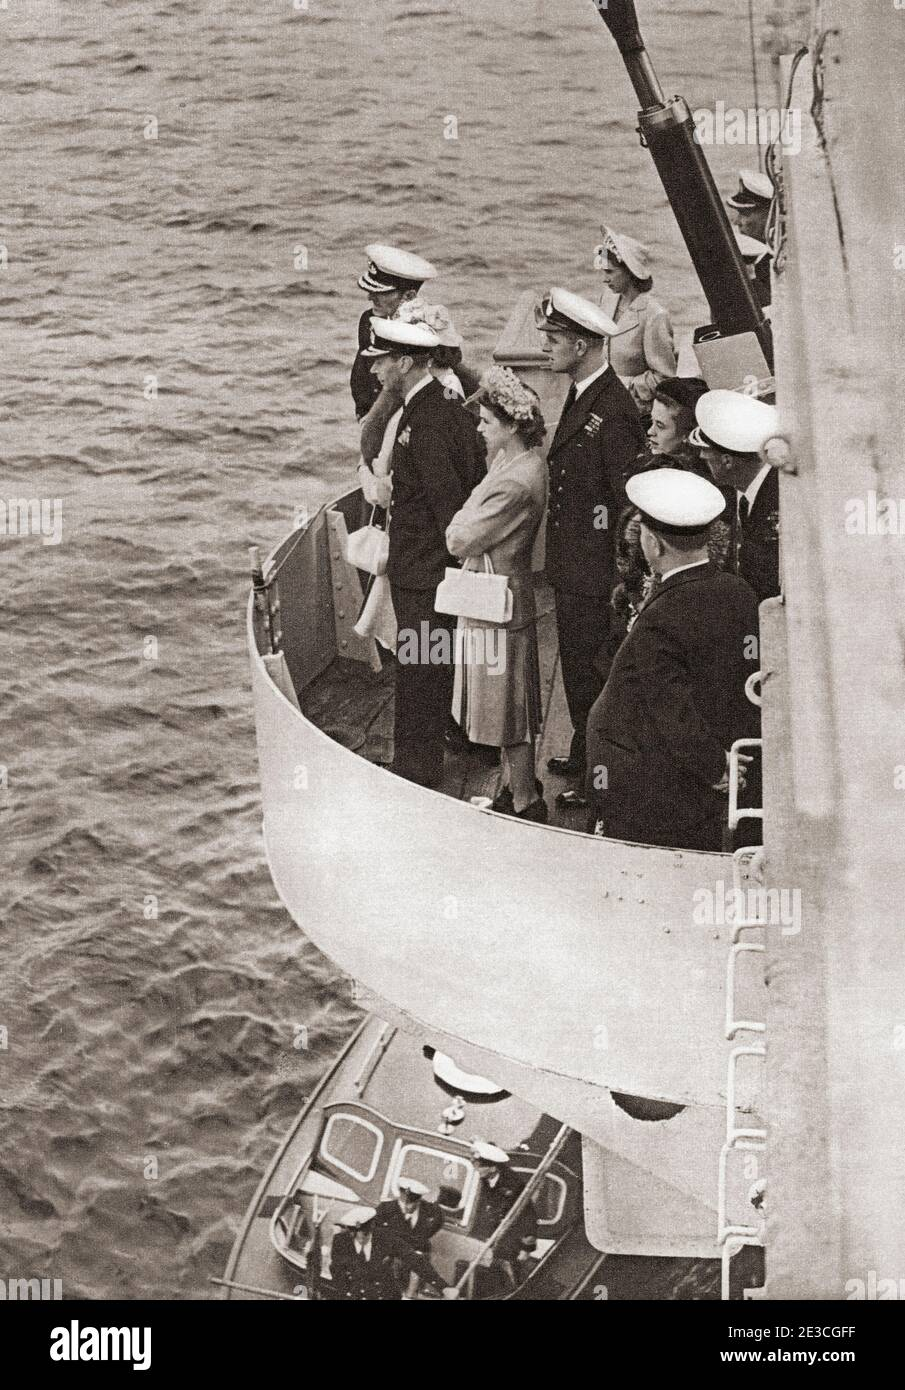 EDITORIAL ONLY Princess Elizabeth of York and Prince Philip, seen here when he was Lieutenant Philip Mountbatten, accompanying her father King George VI on board the H.M.S. Maidstone during an inspection of the Home Fleet in the Clyde.  George VI (Albert Frederick Arthur George),1895 –1952. King of the United Kingdom and the Dominions of the British Commonwealth.  Princess Elizabeth of York, future Elizabeth II, born 1926.  Queen of the United Kingdom.  Prince Philip, born Prince Philip of Greece and Denmark, 1921. Husband of Queen Elizabeth II of the United Kingdom.  From The Queen Elizabeth Stock Photo